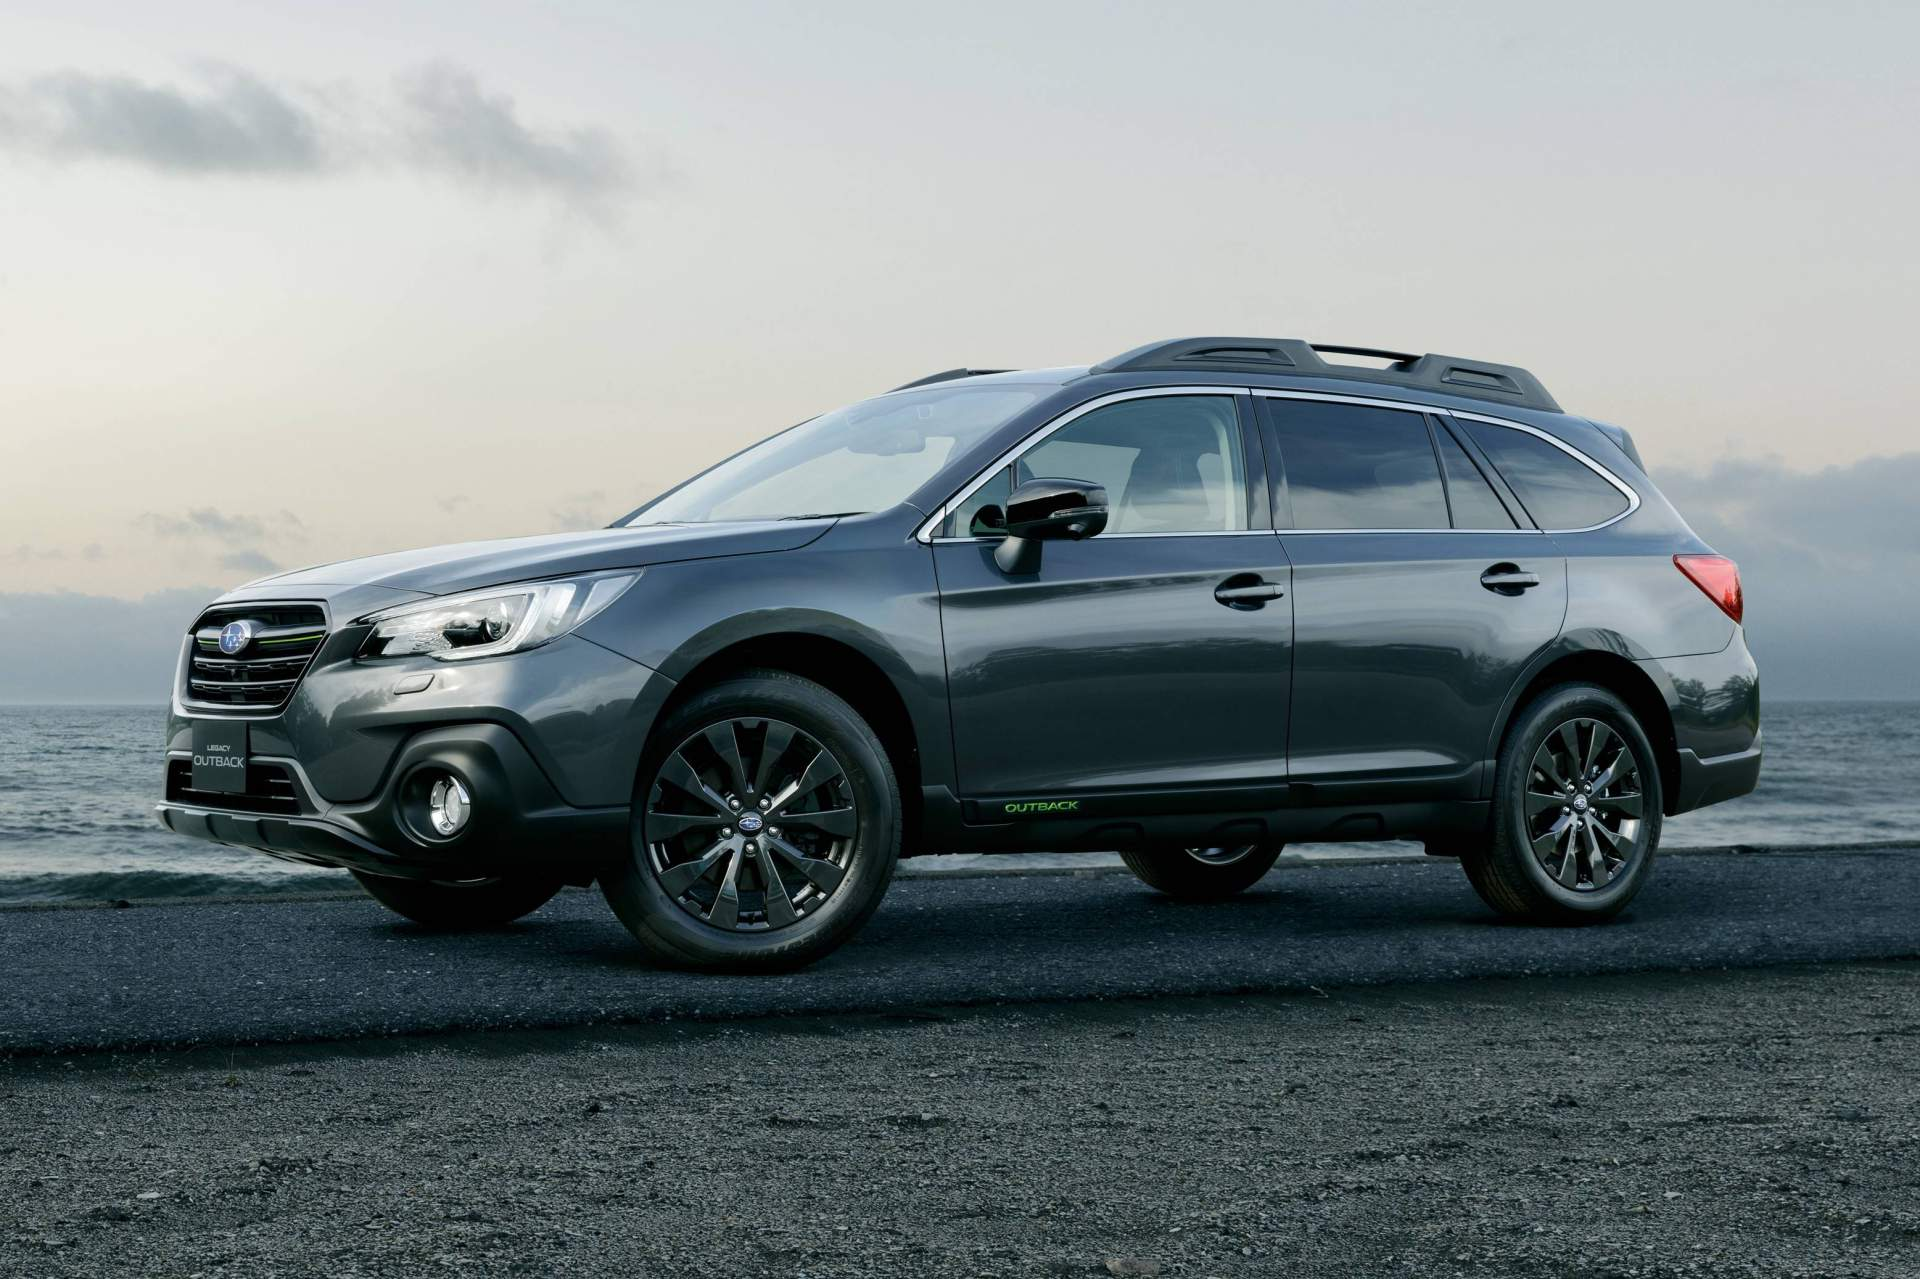 20d6fc56-subaru-outback-x-break-6